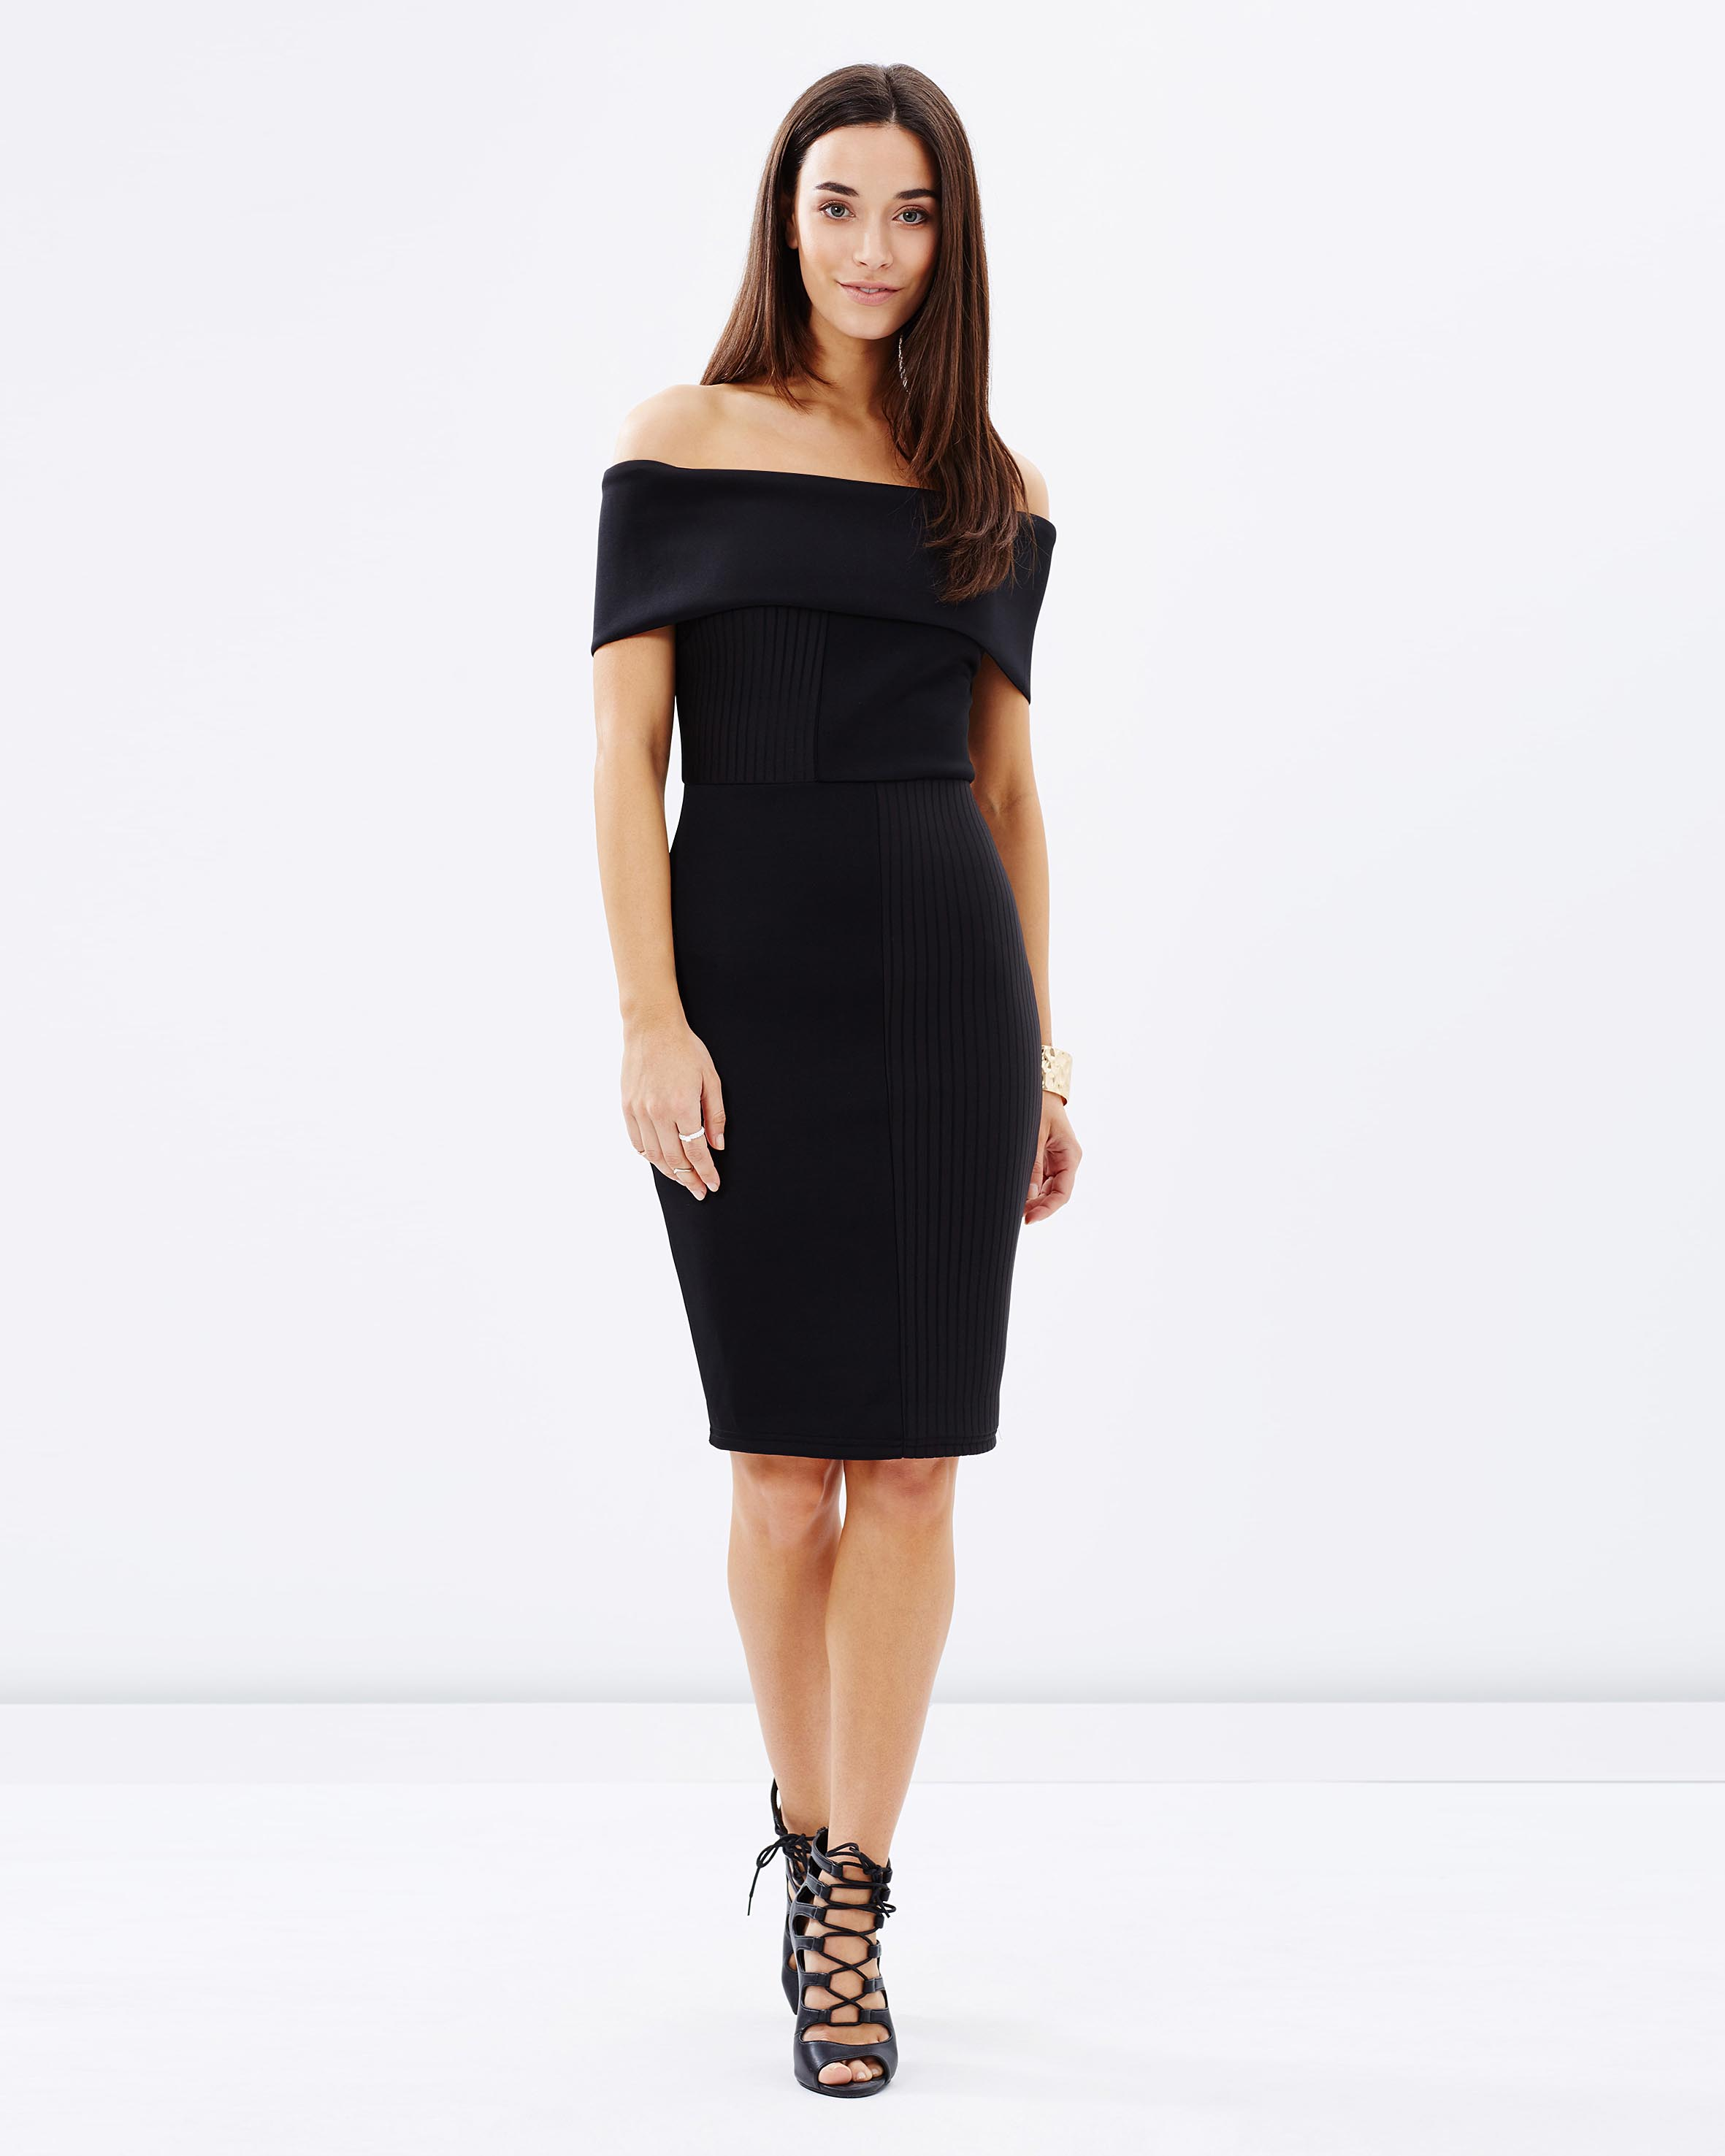 Black Bodycon Dress Outfit HDbdpd9